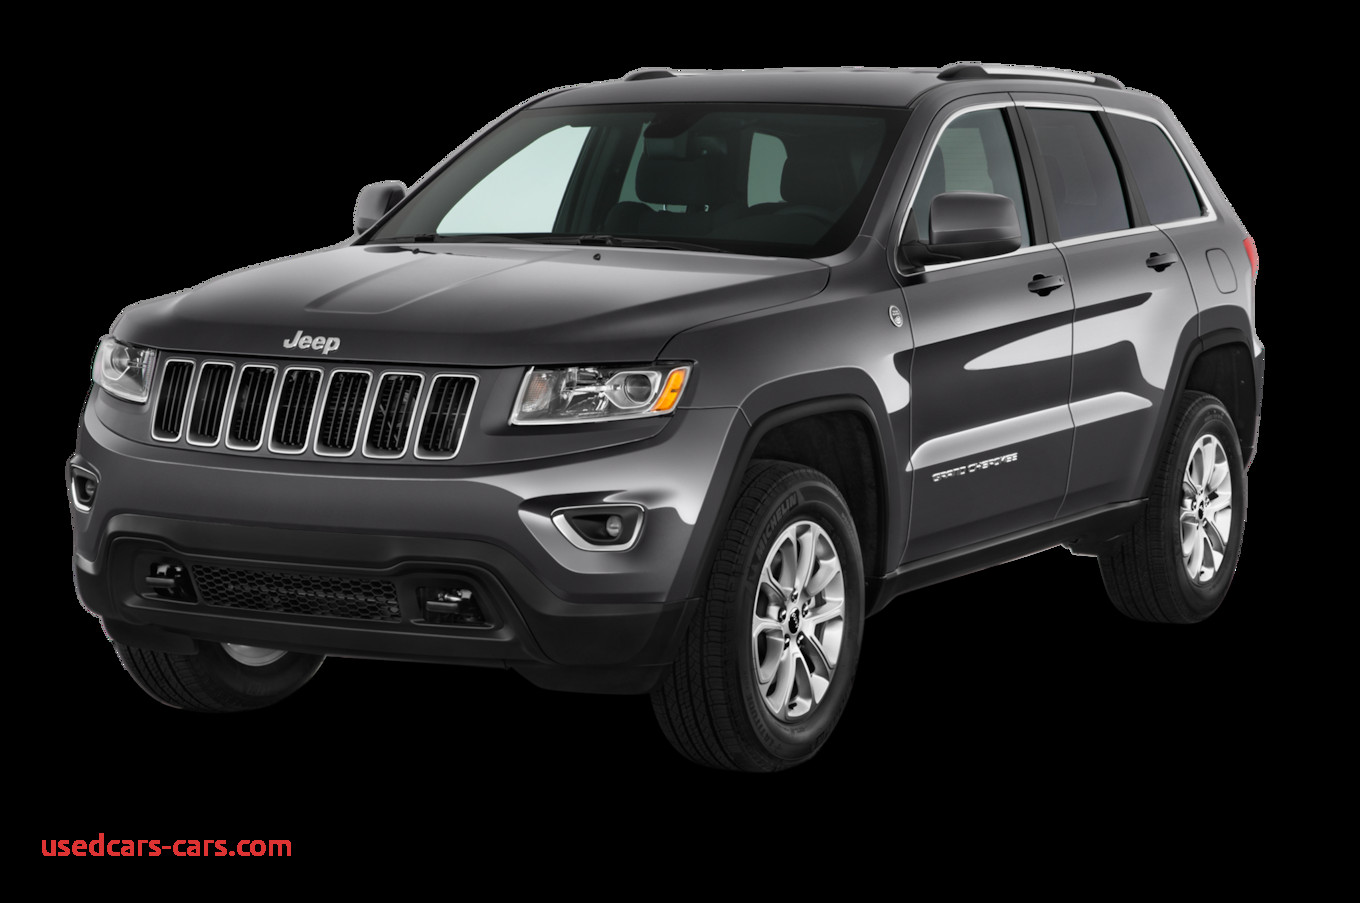 2015 Jeep Grand Cherokee Limited Unique 2015 Jeep Grand Cherokee Reviews and Rating Motor Trend